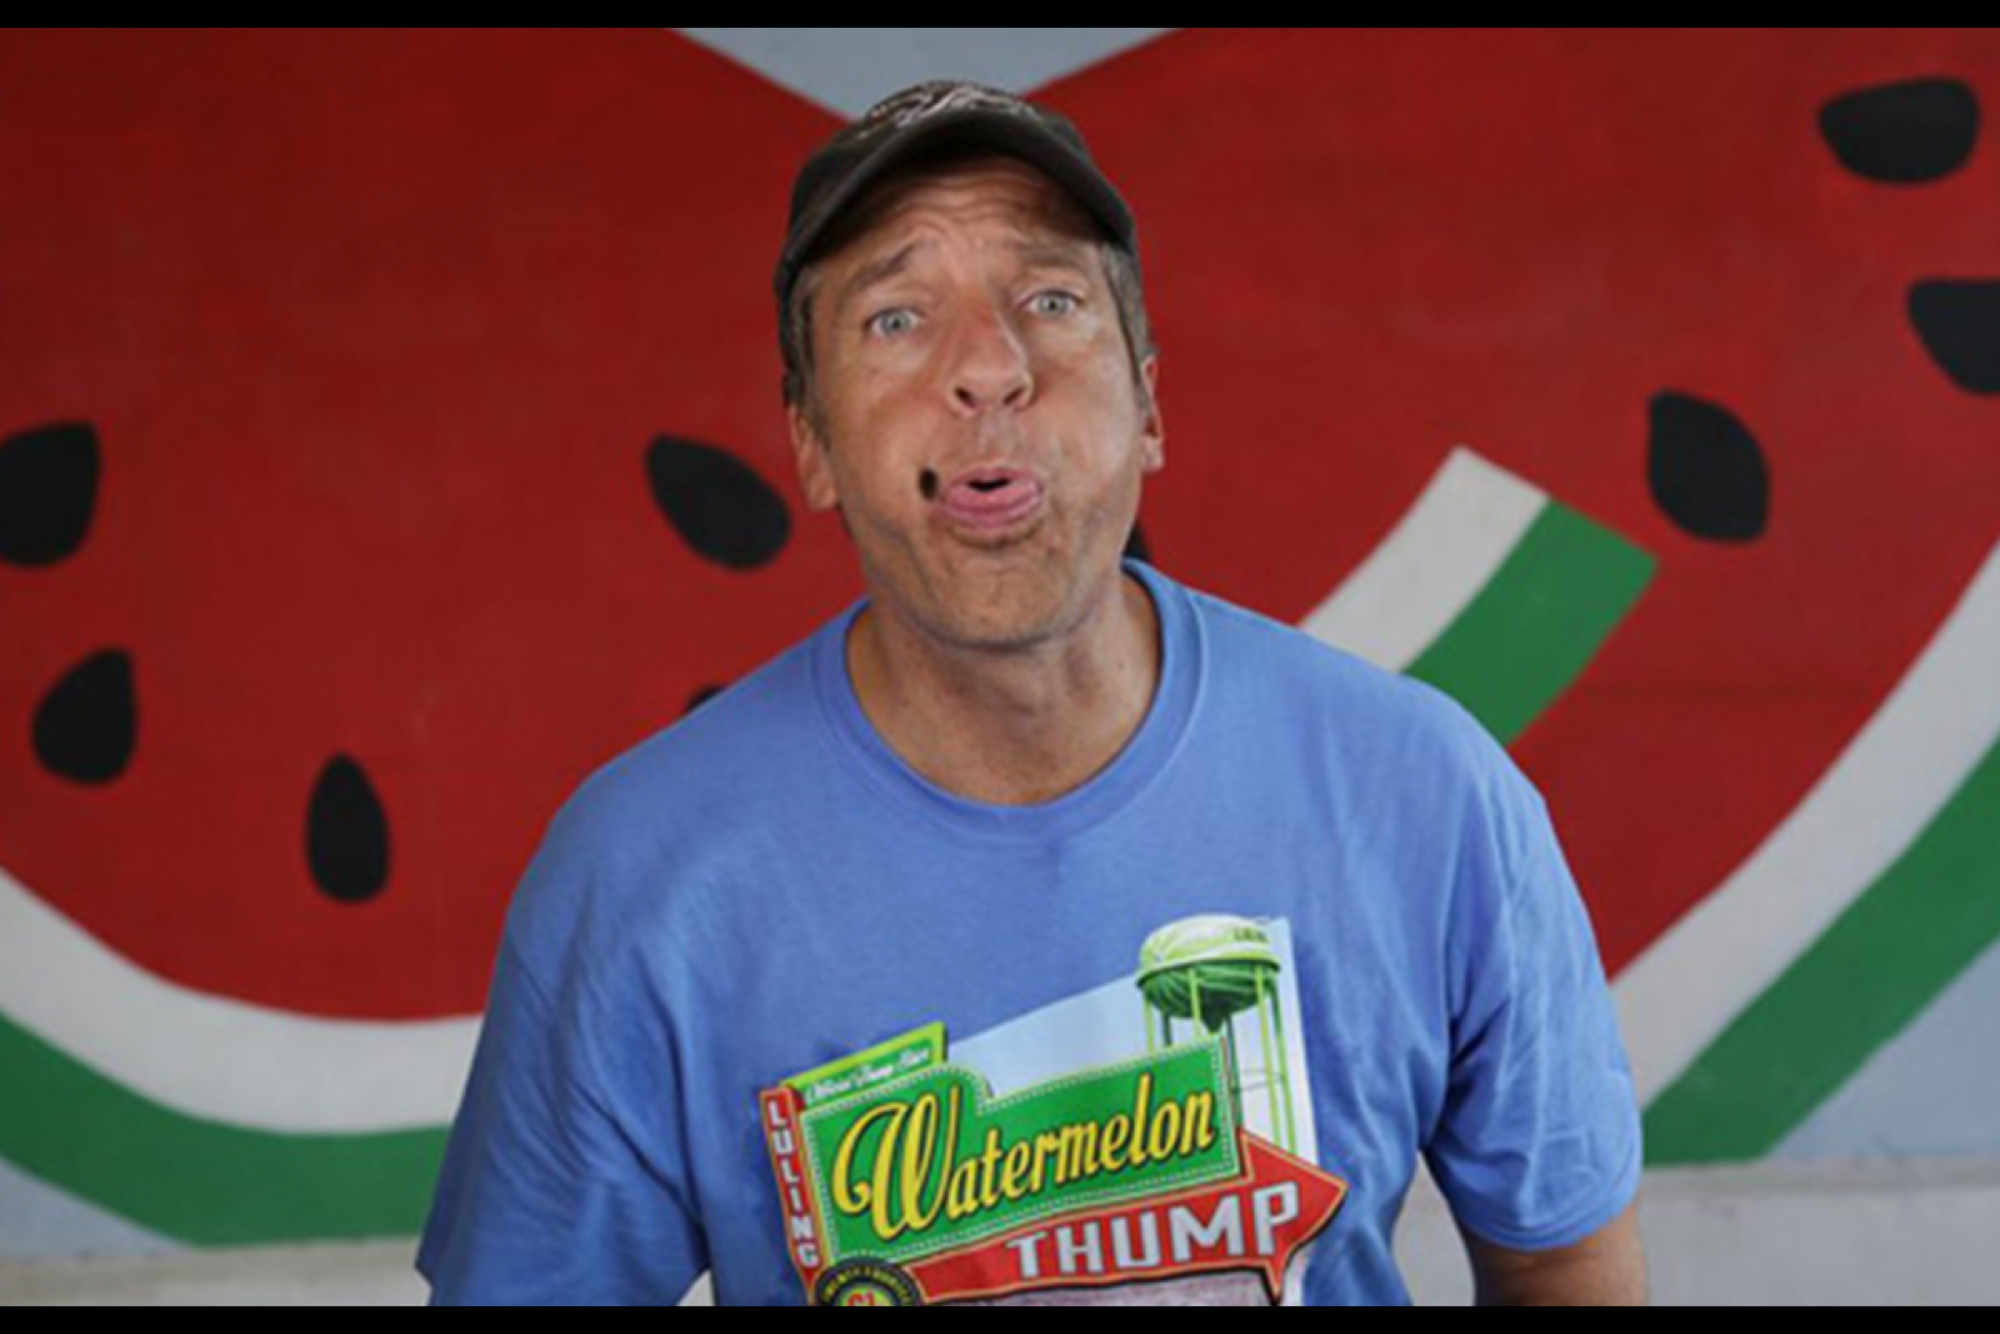 Mike Rowe on His Facebook Obsession, Working Hard and